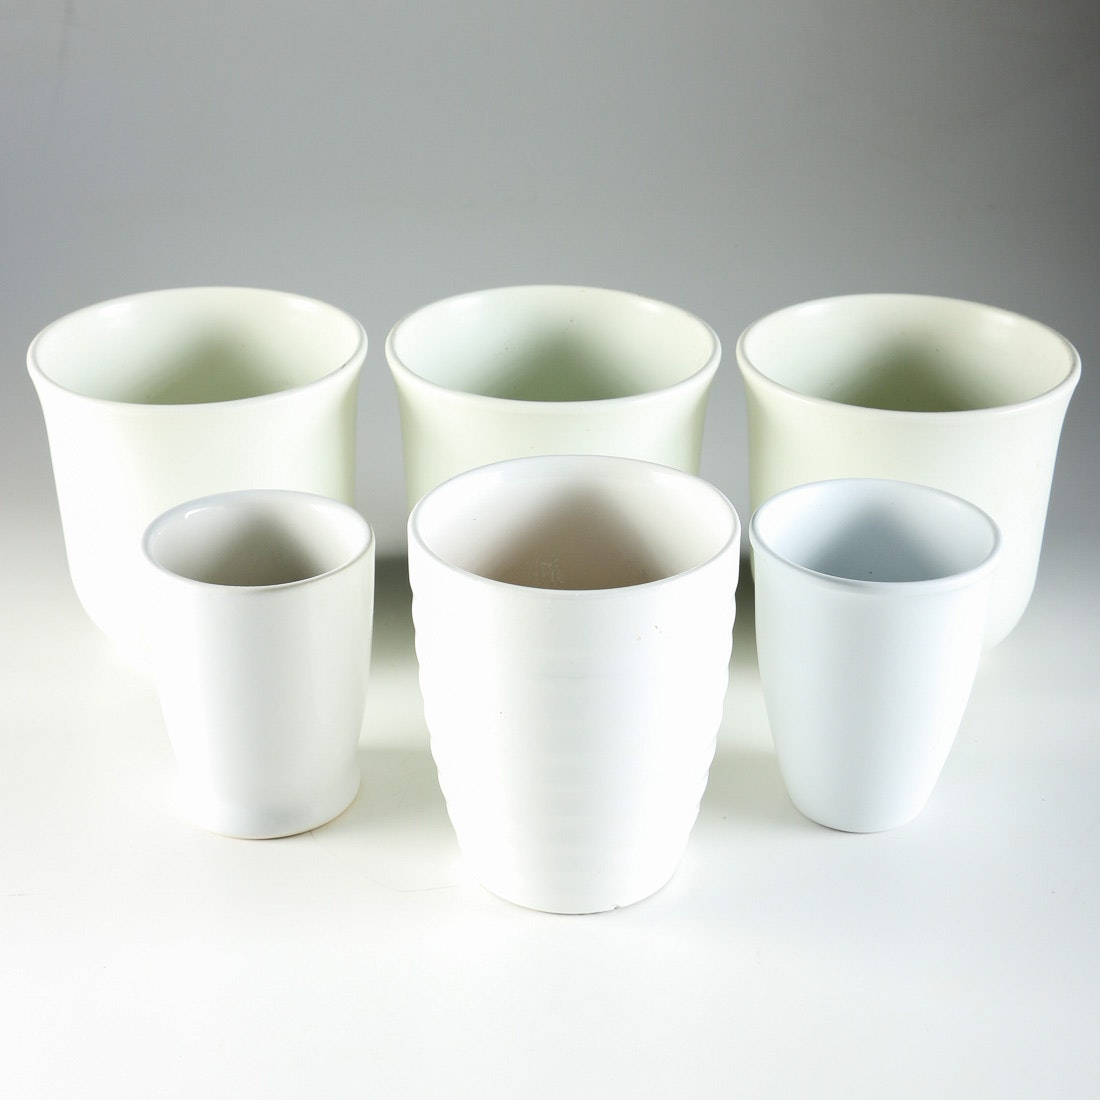 Collection of White Modern Planters